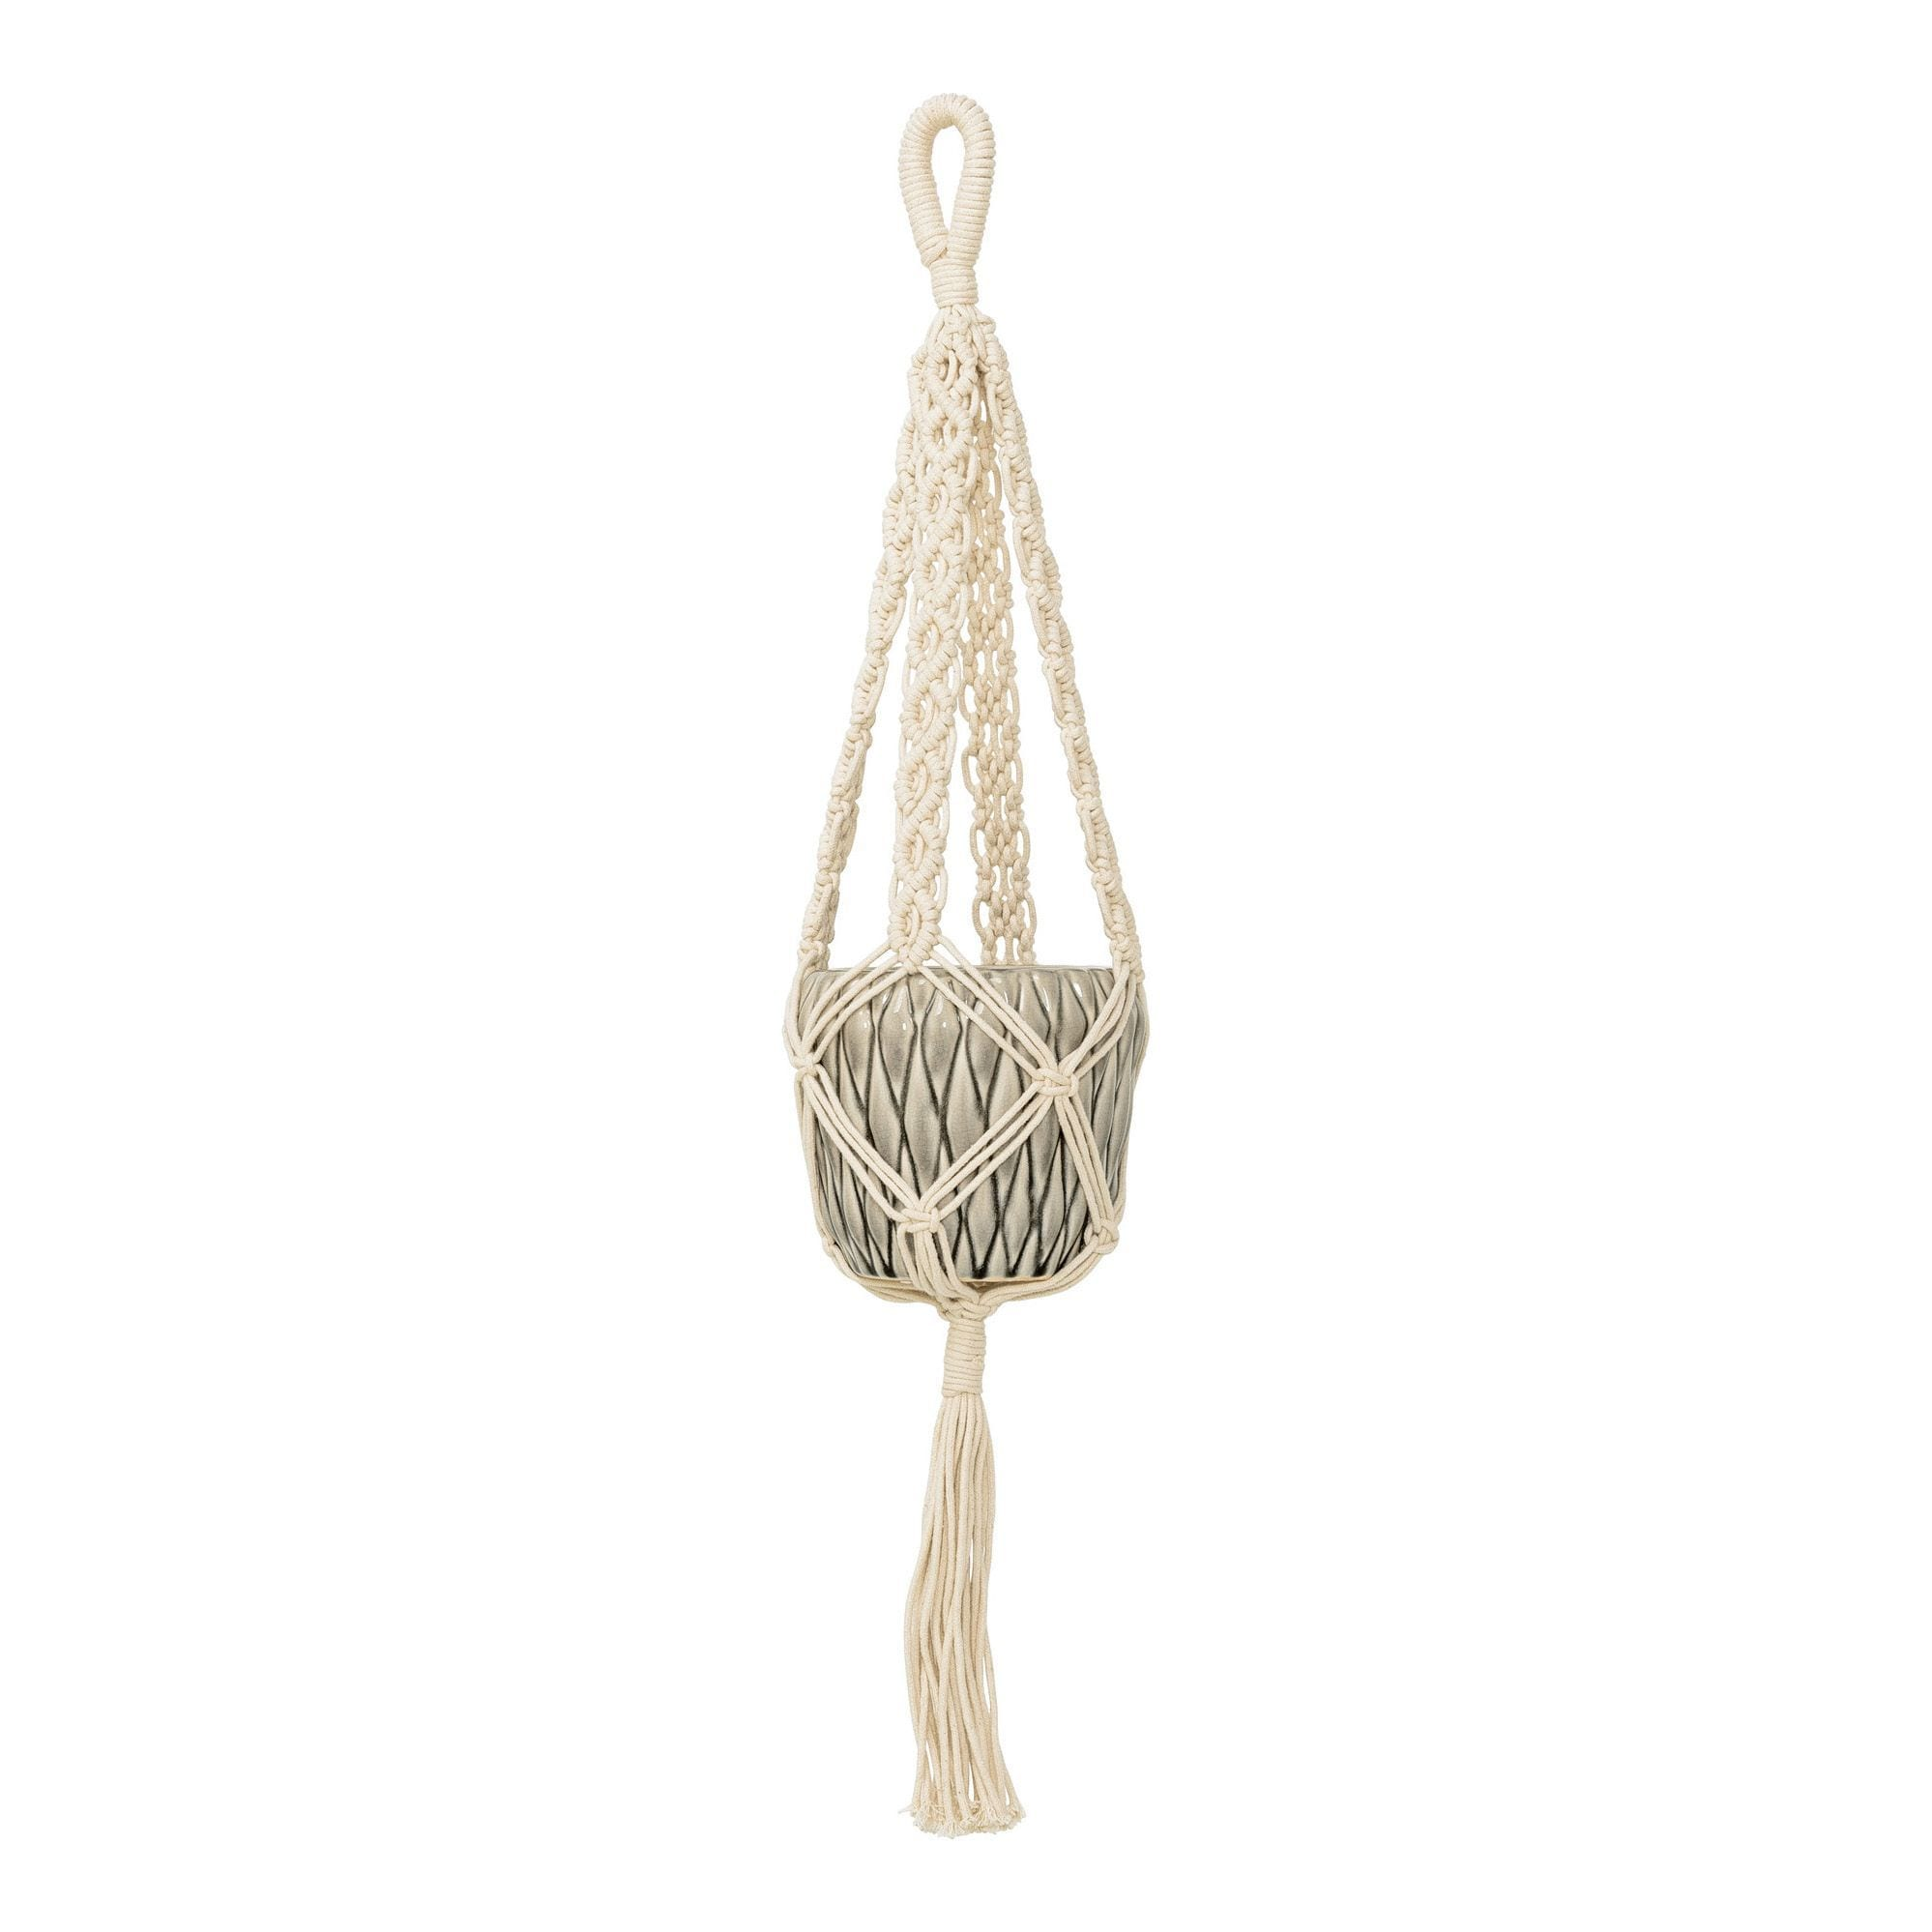 Suspension en macramé